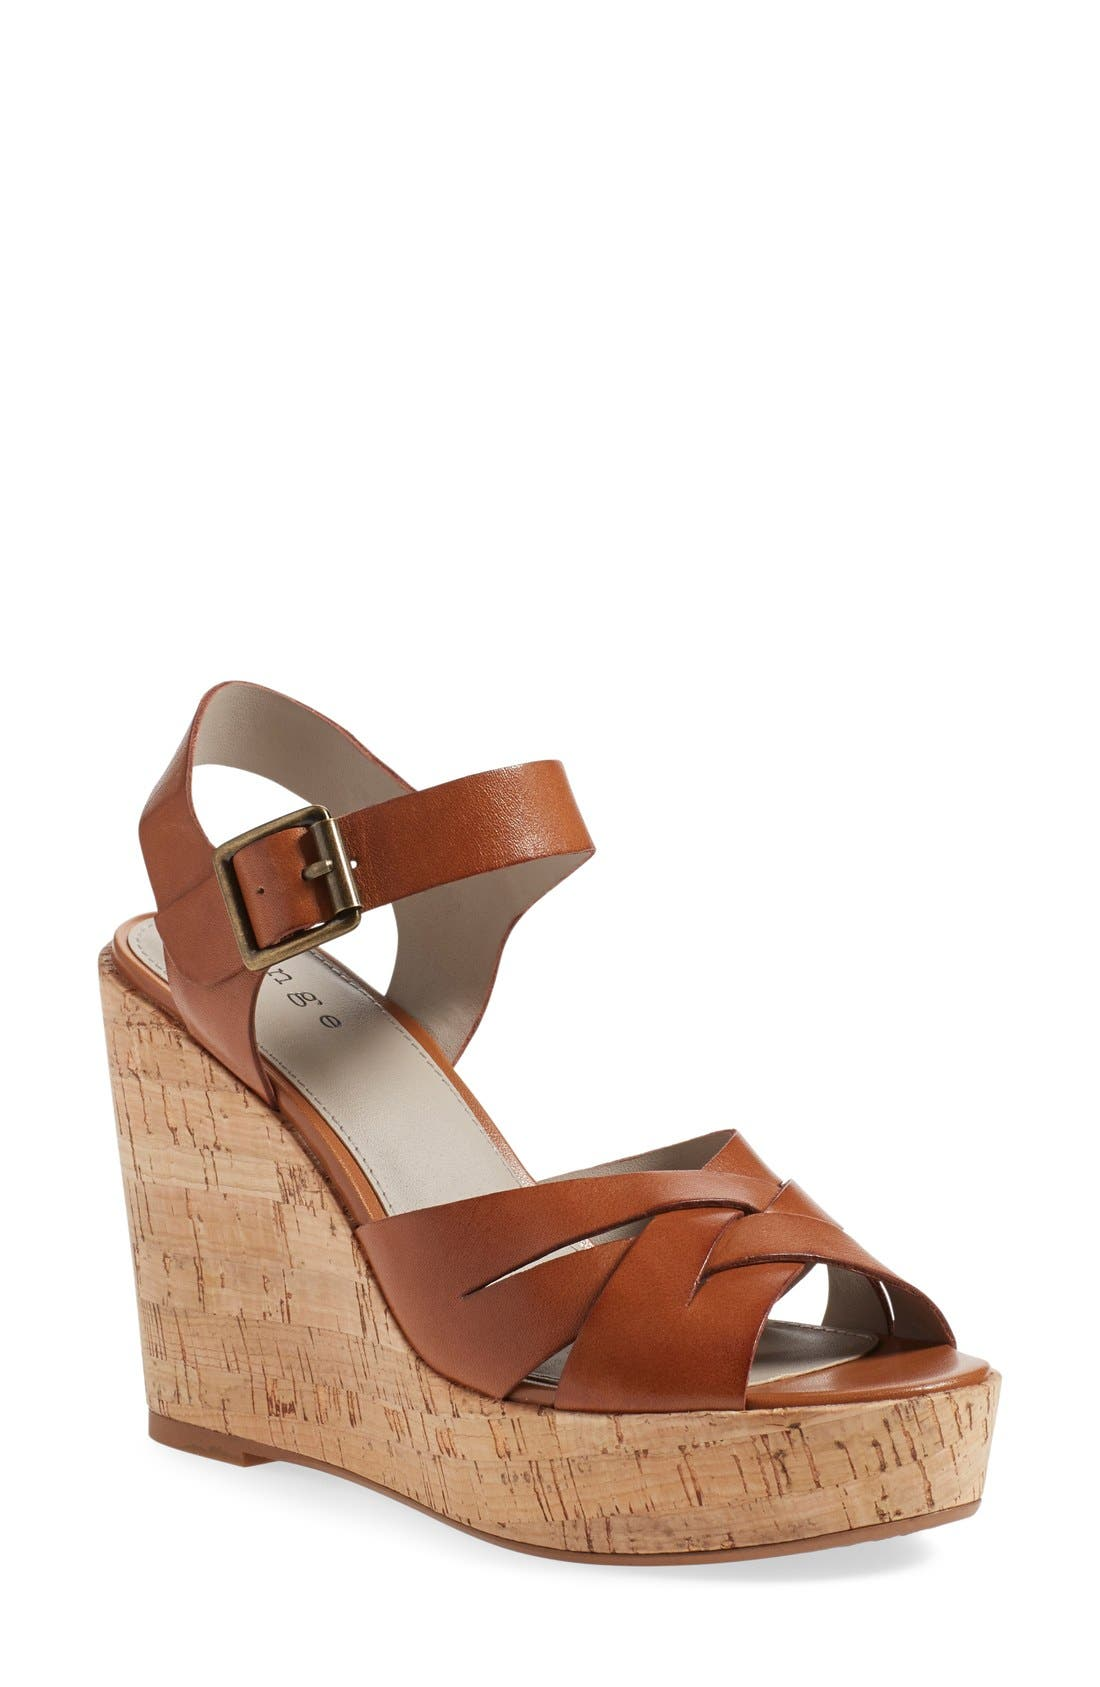 Alternate Image 1 Selected - Hinge 'Hadley' Wedge Sandal (Women)